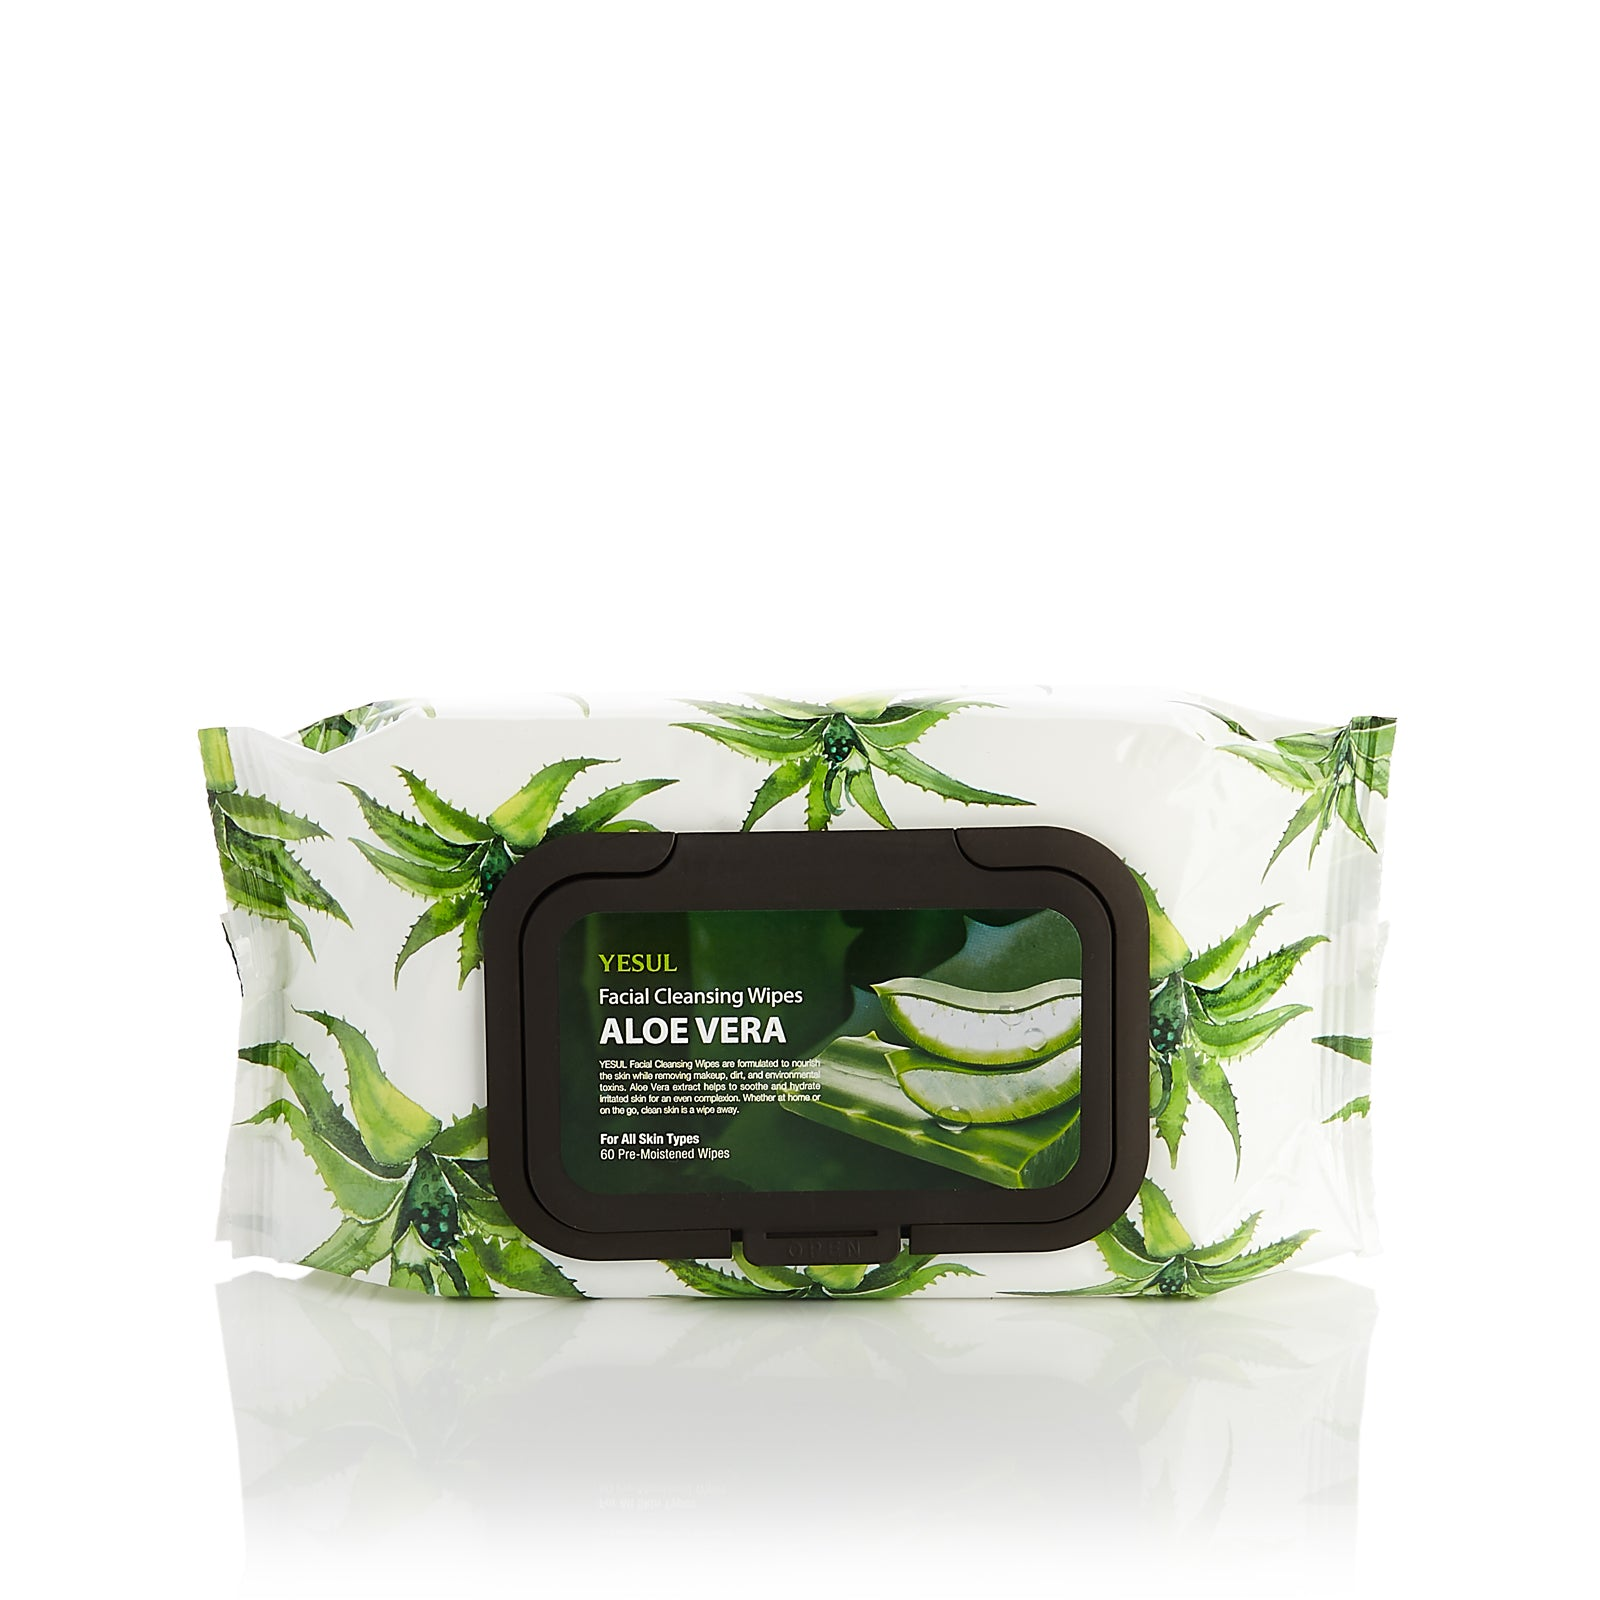 YESUL Aloe Vera Facial Cleansing Wipes